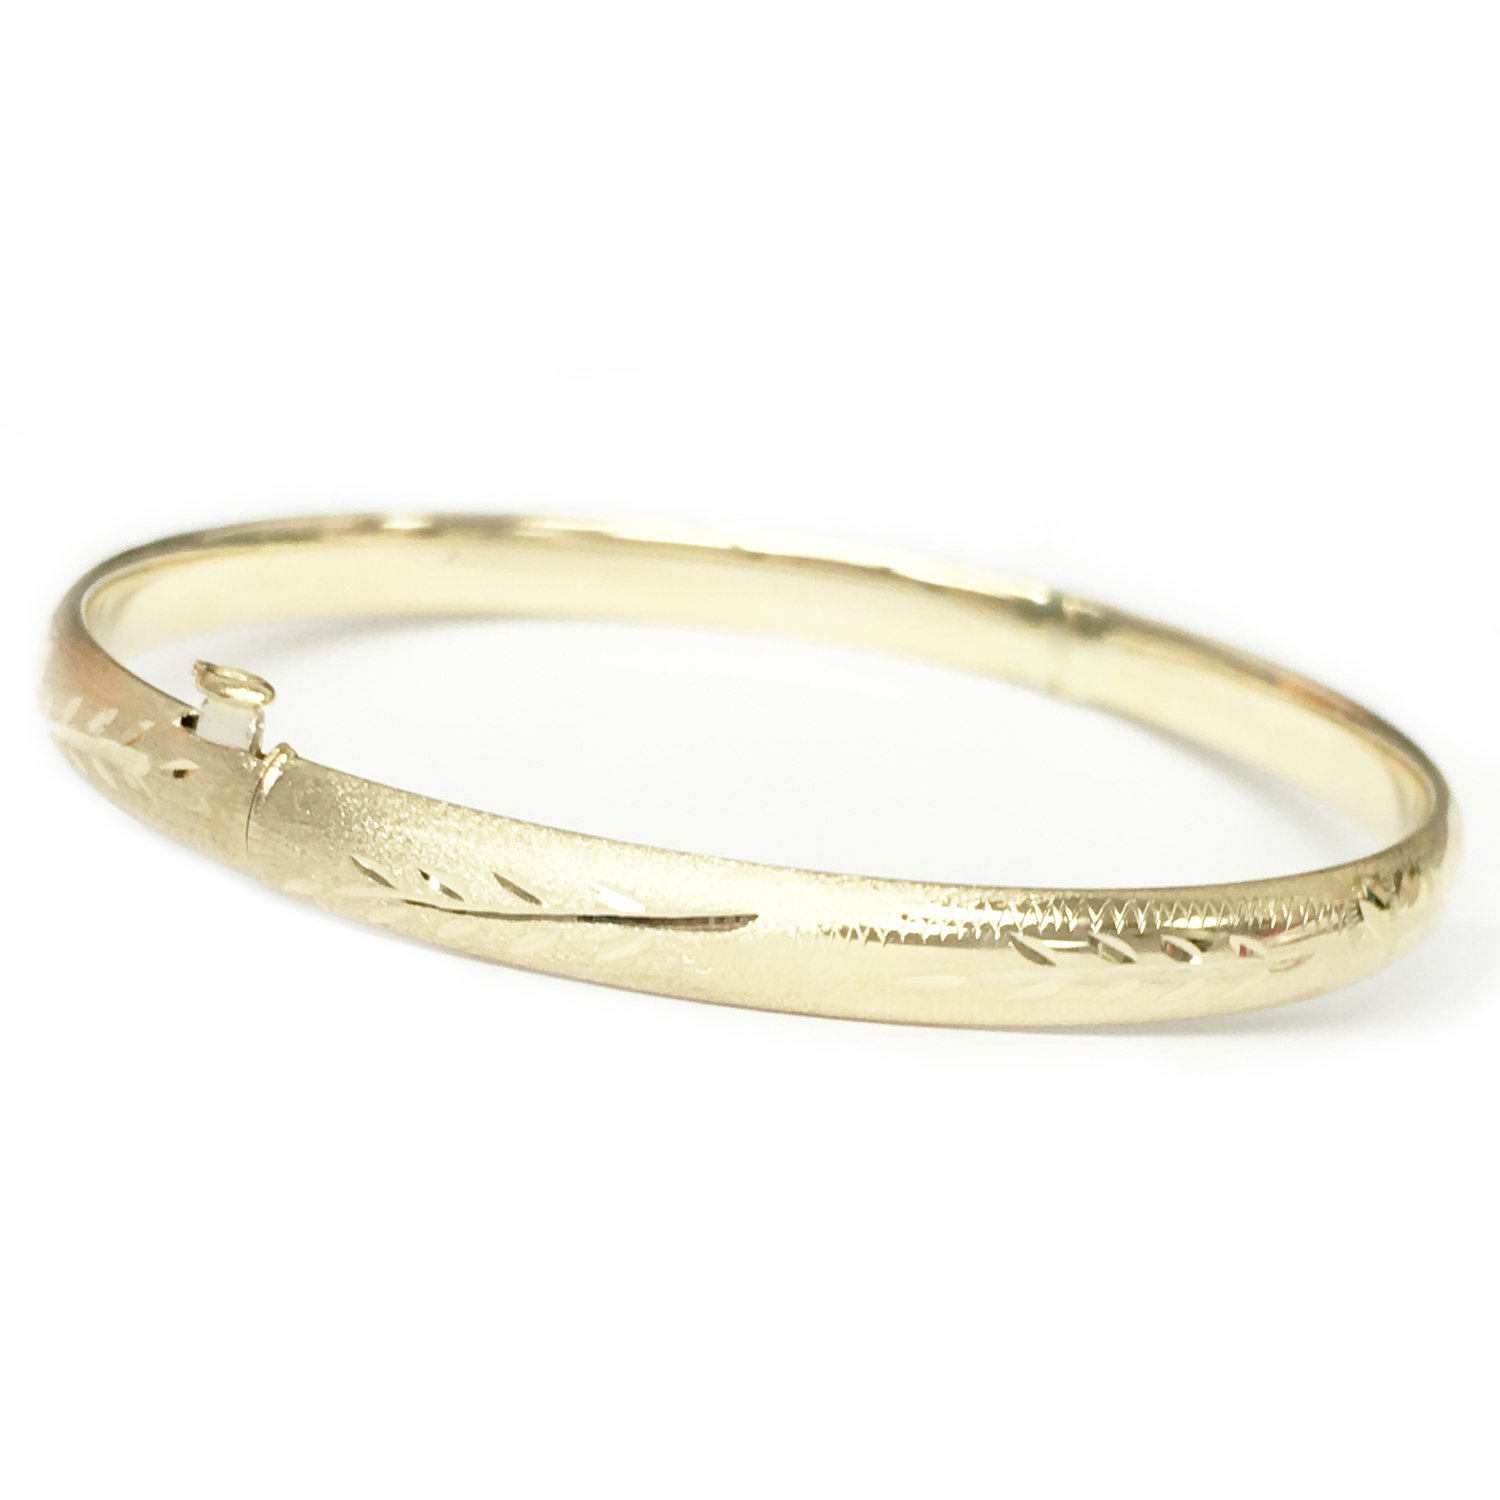 14k Real Yellow Gold Engraved Bangle Bracelet 8 Inches